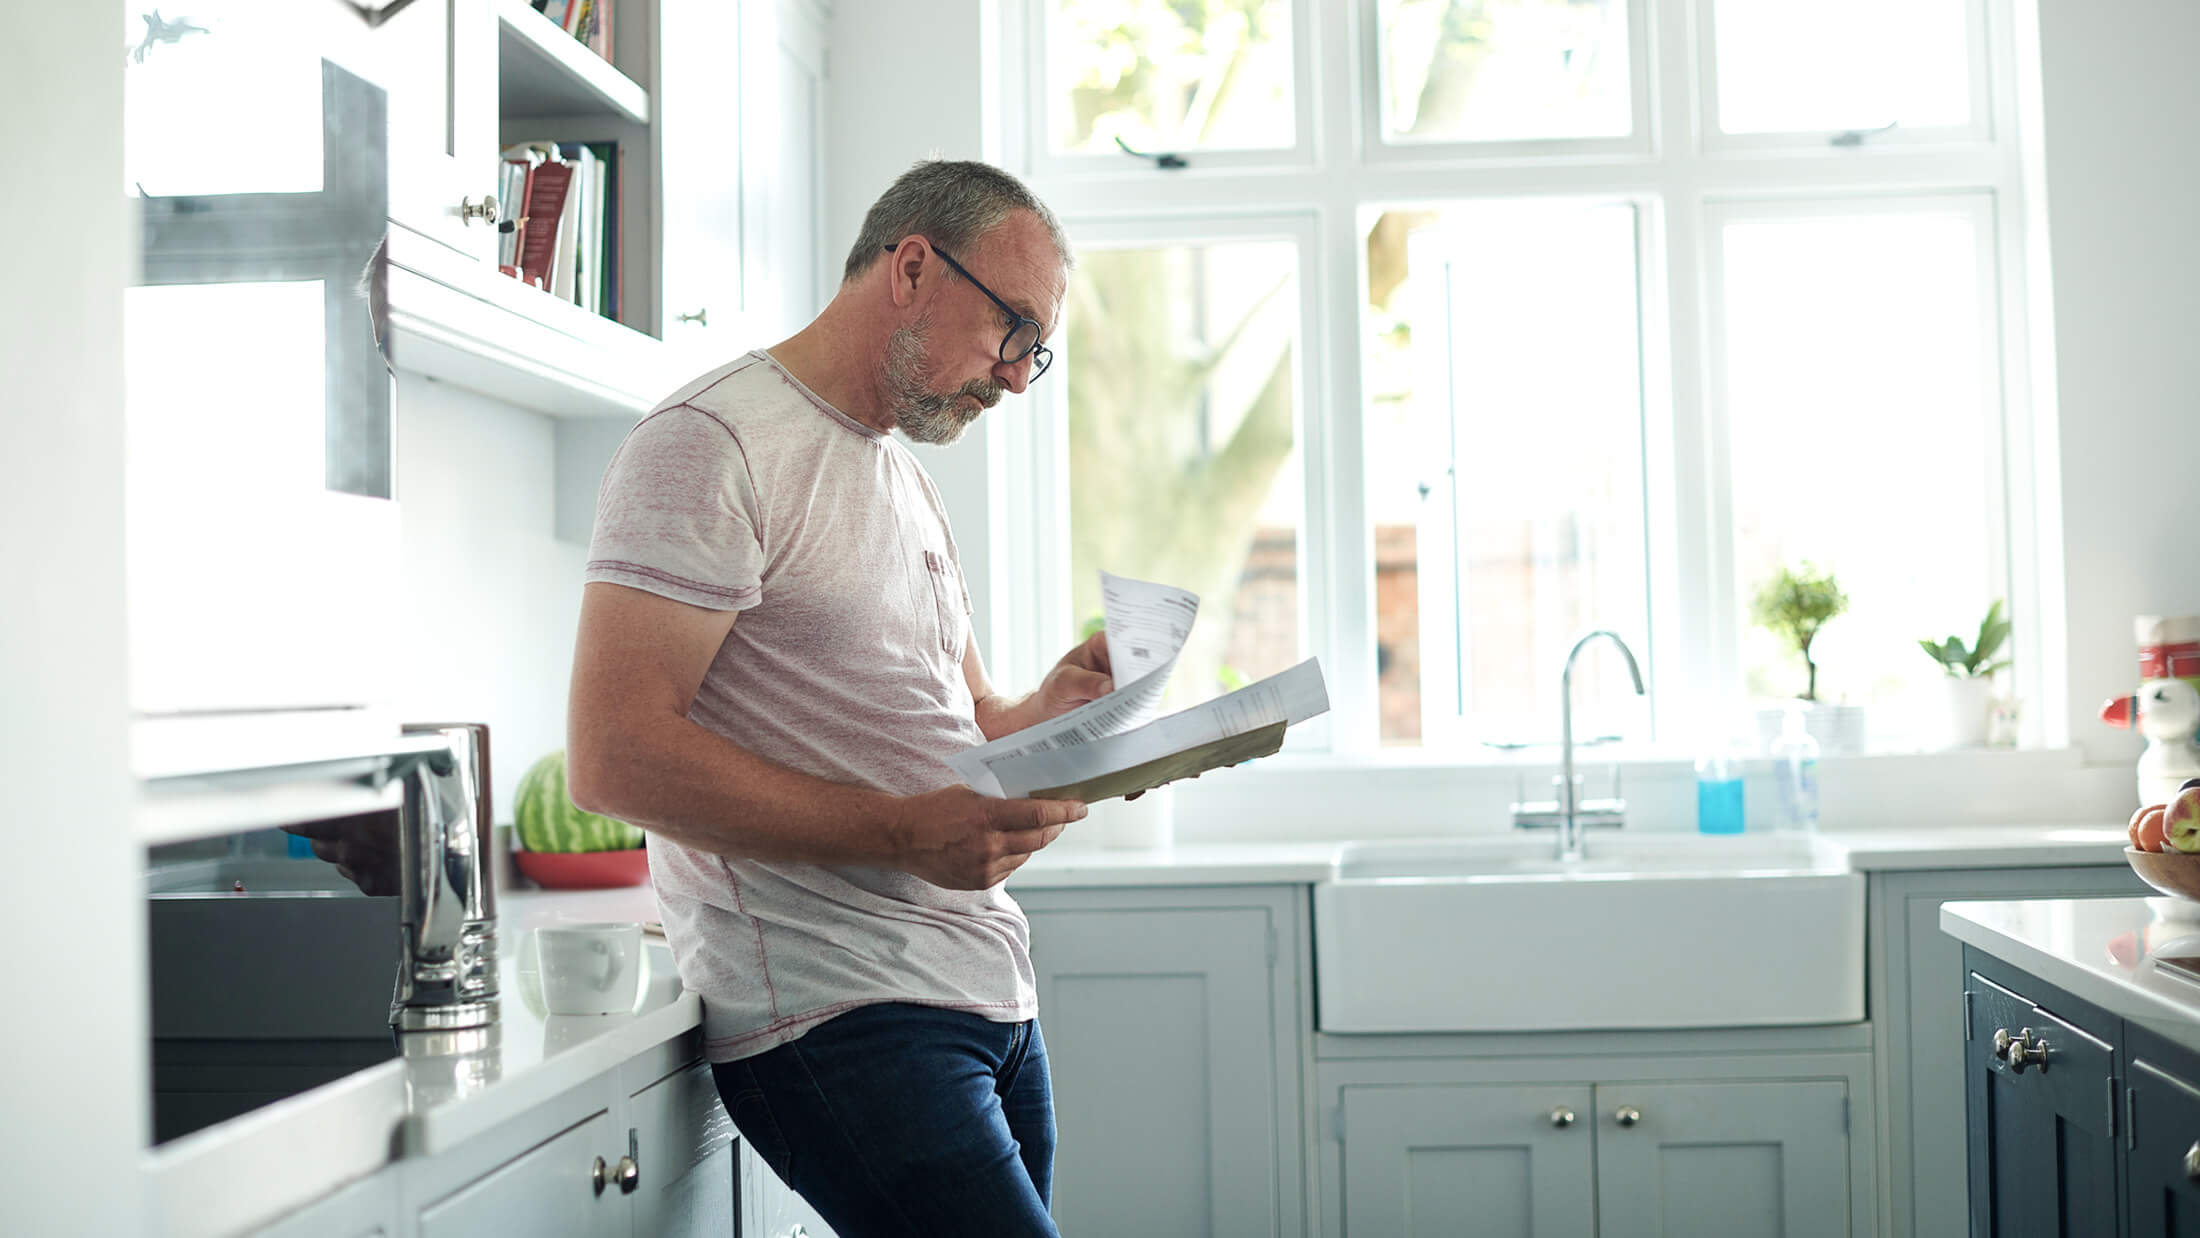 Mature man reading documents